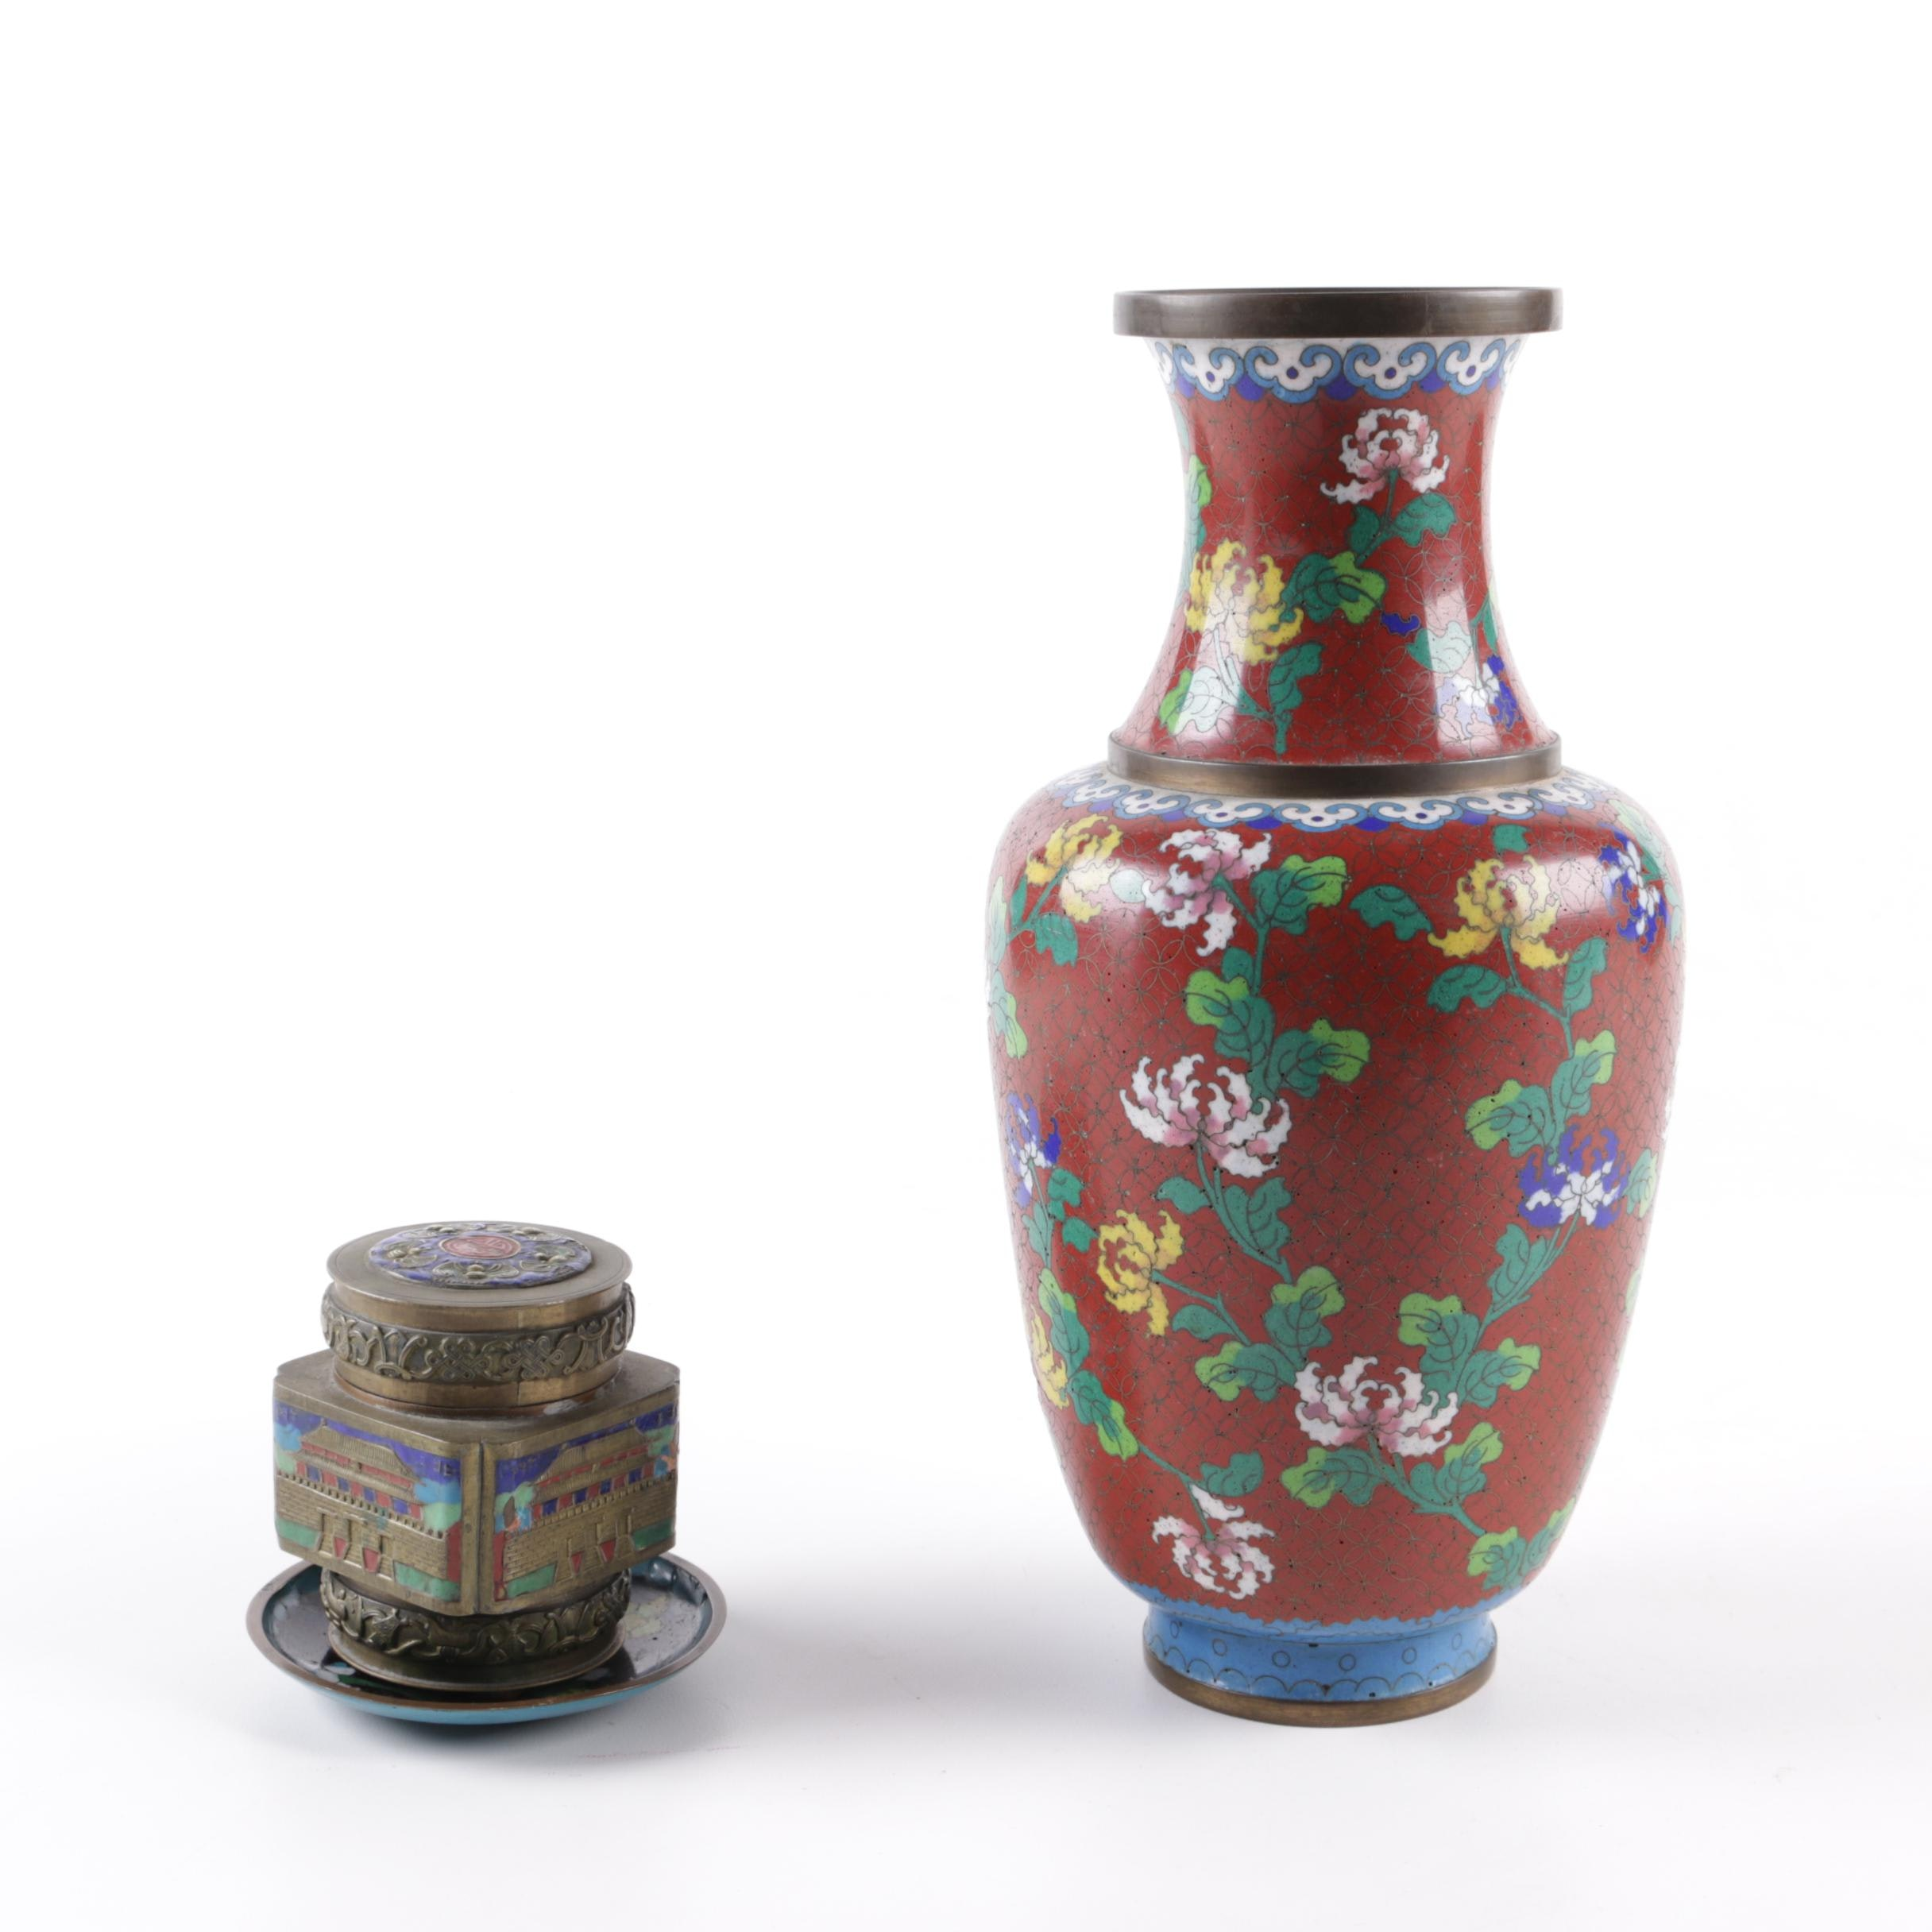 Chinese Enameled Tea Caddy and Cloisonné Vase and Trinket Dish